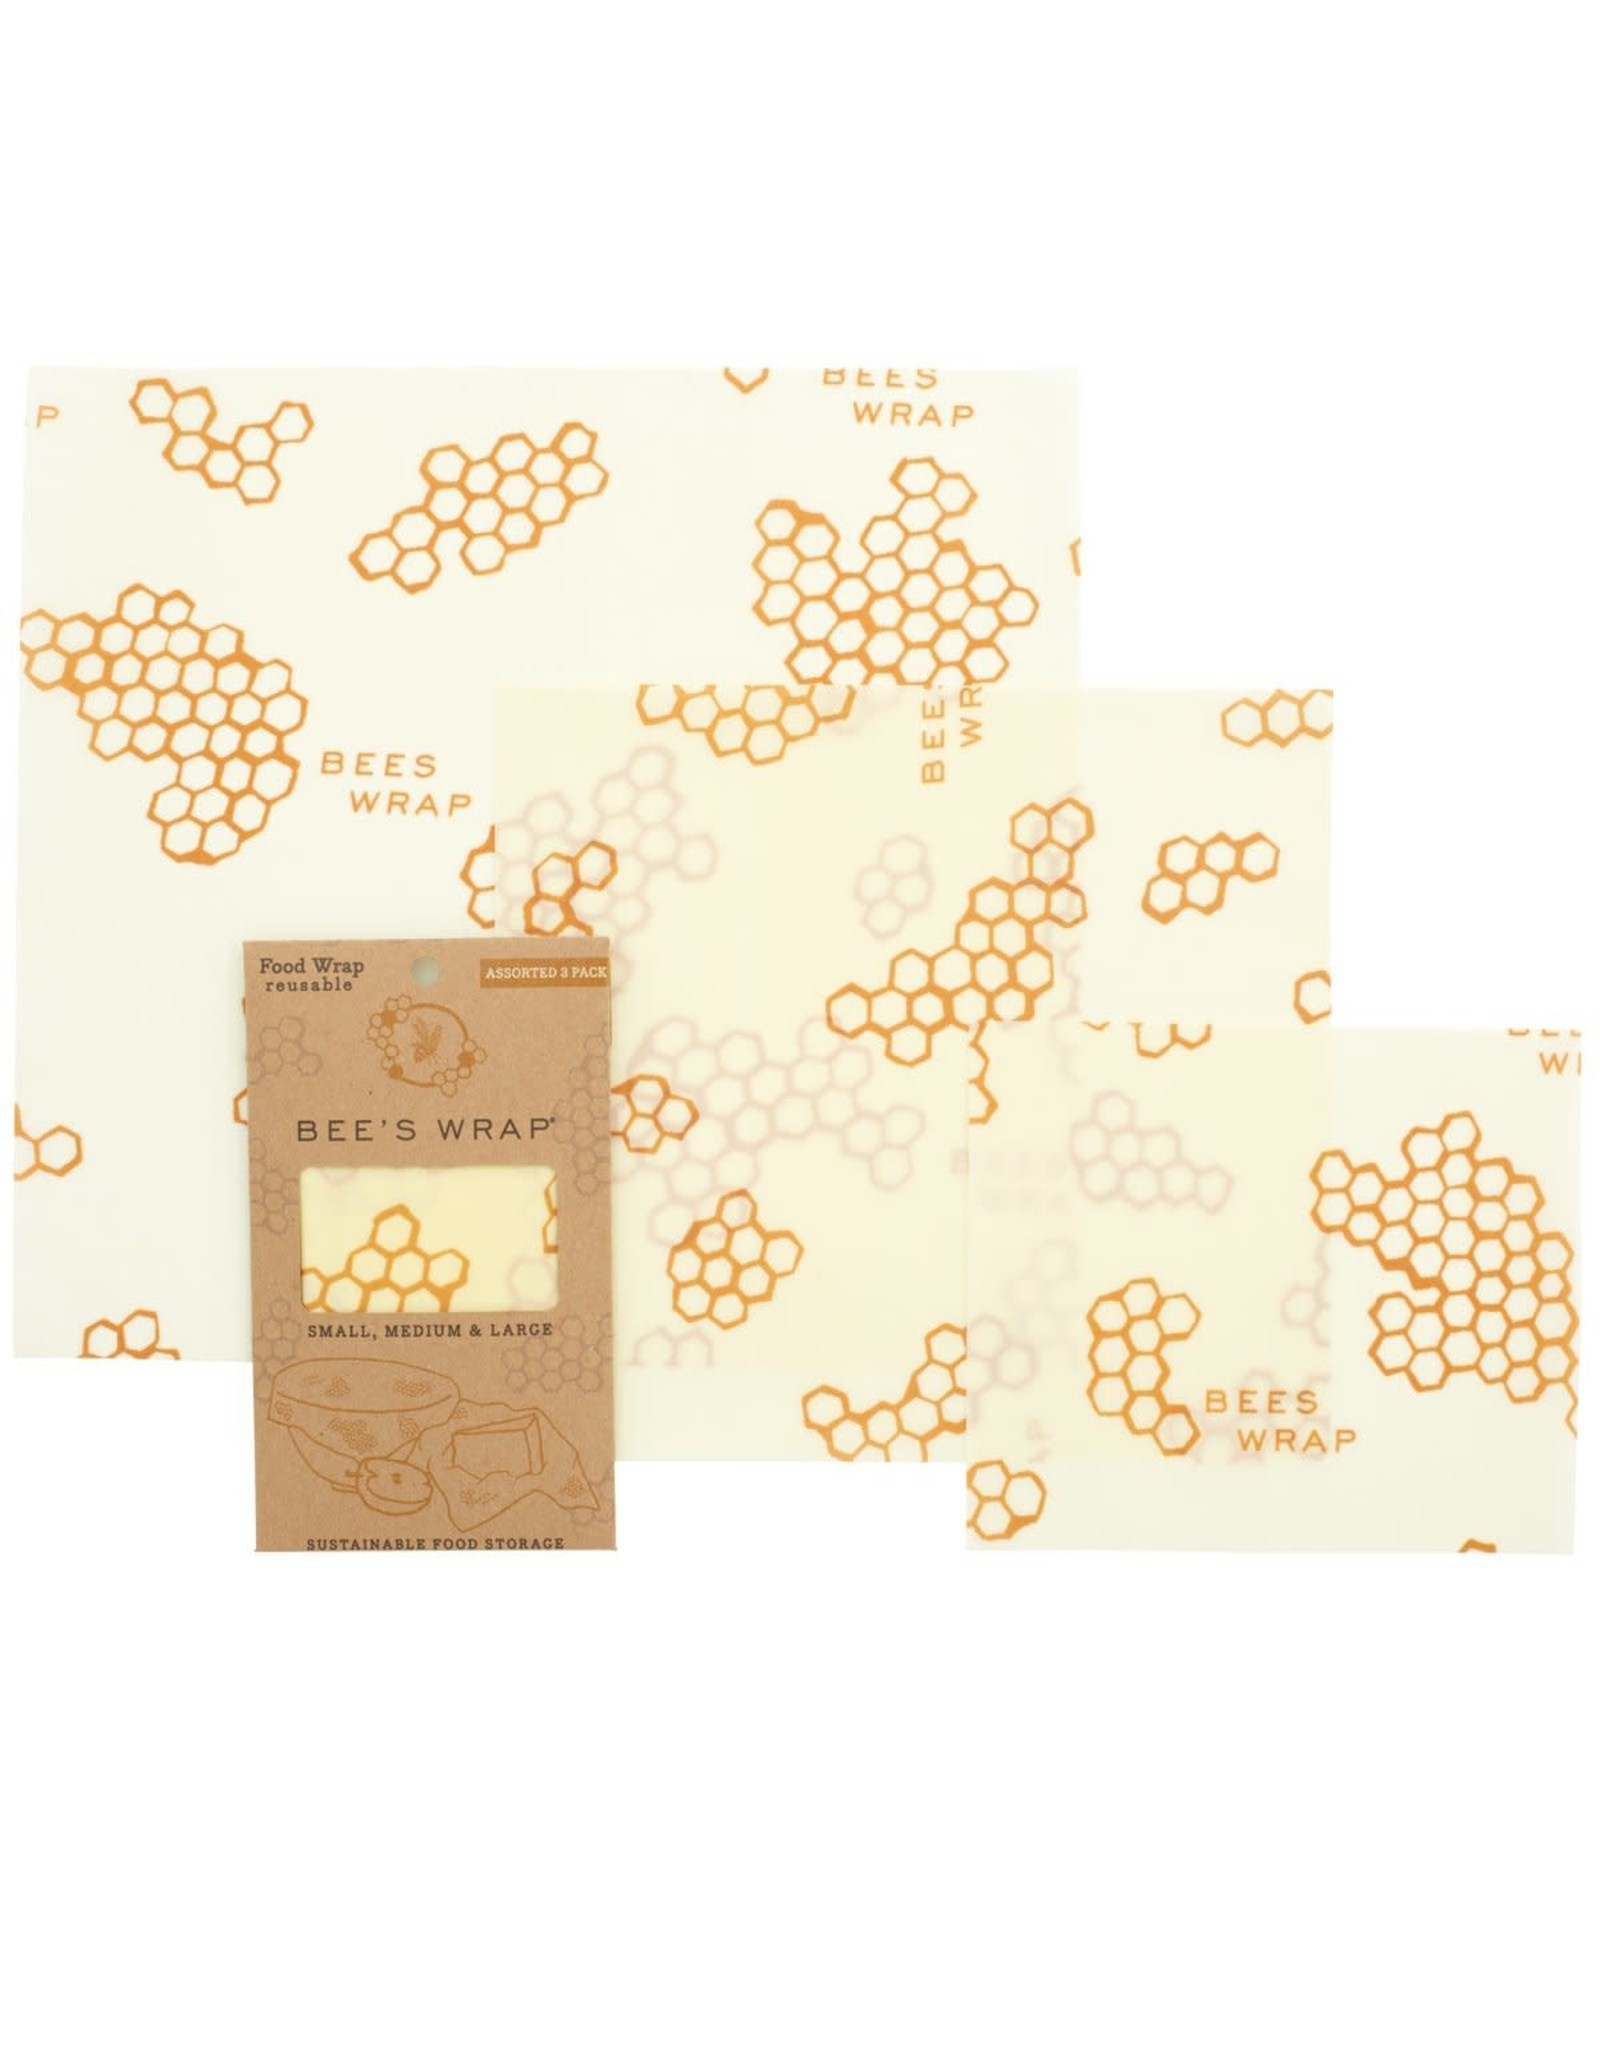 Bees Wrap 3 Pack Assorted Wraps - Honeycomb